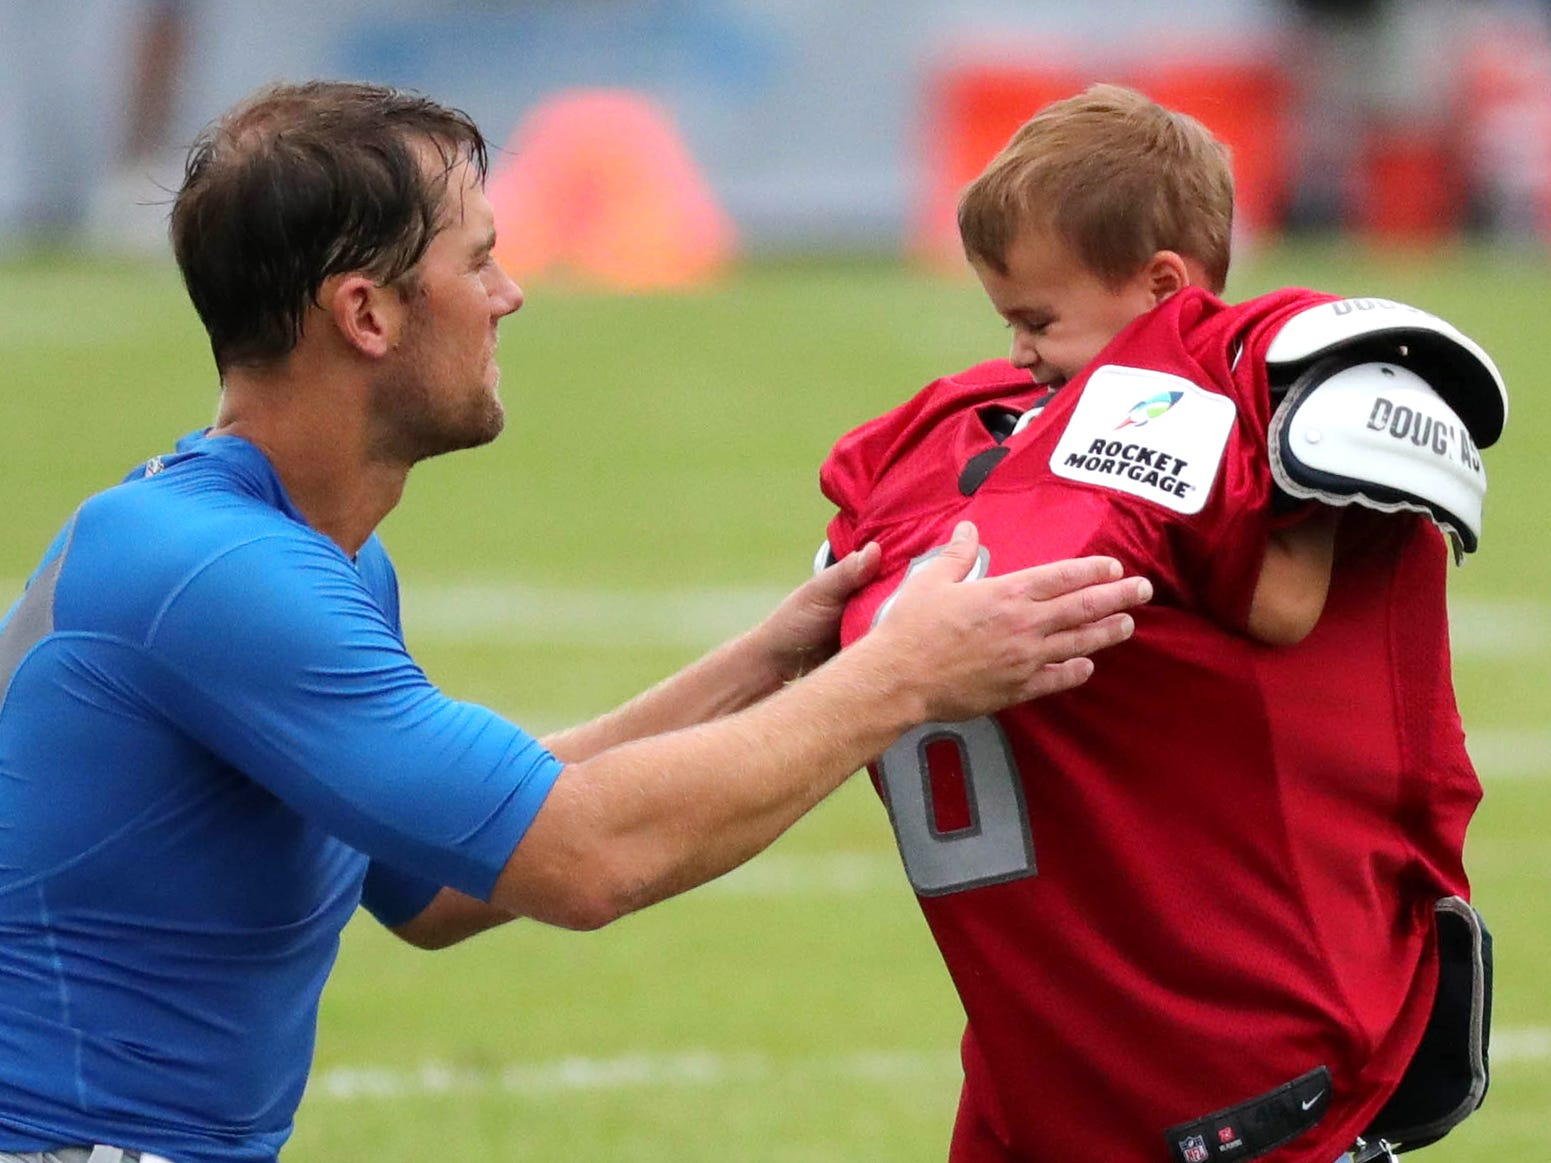 Detroit Lions quarterback Matt Cassel puts his jersey and pads on his son Clayton after practice Wednesday, August 1, 2018, at the practice facility in Allen Park, Mich.